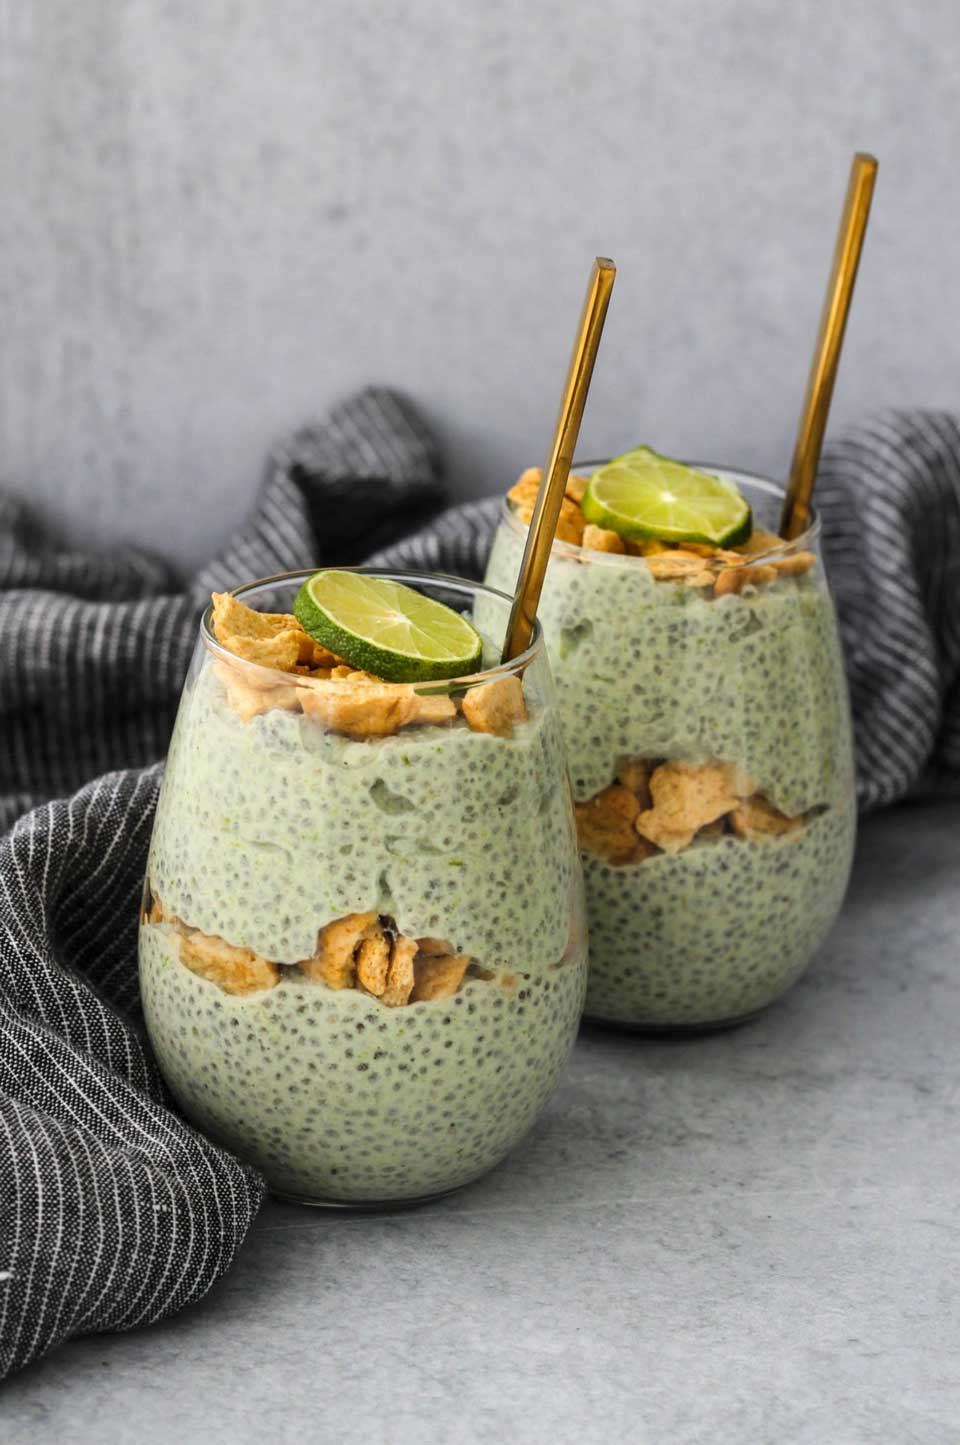 Two stemless glasses showing alternating layers of the chia pudding and broken graham crackers, with lime slices on top and gold spoons.